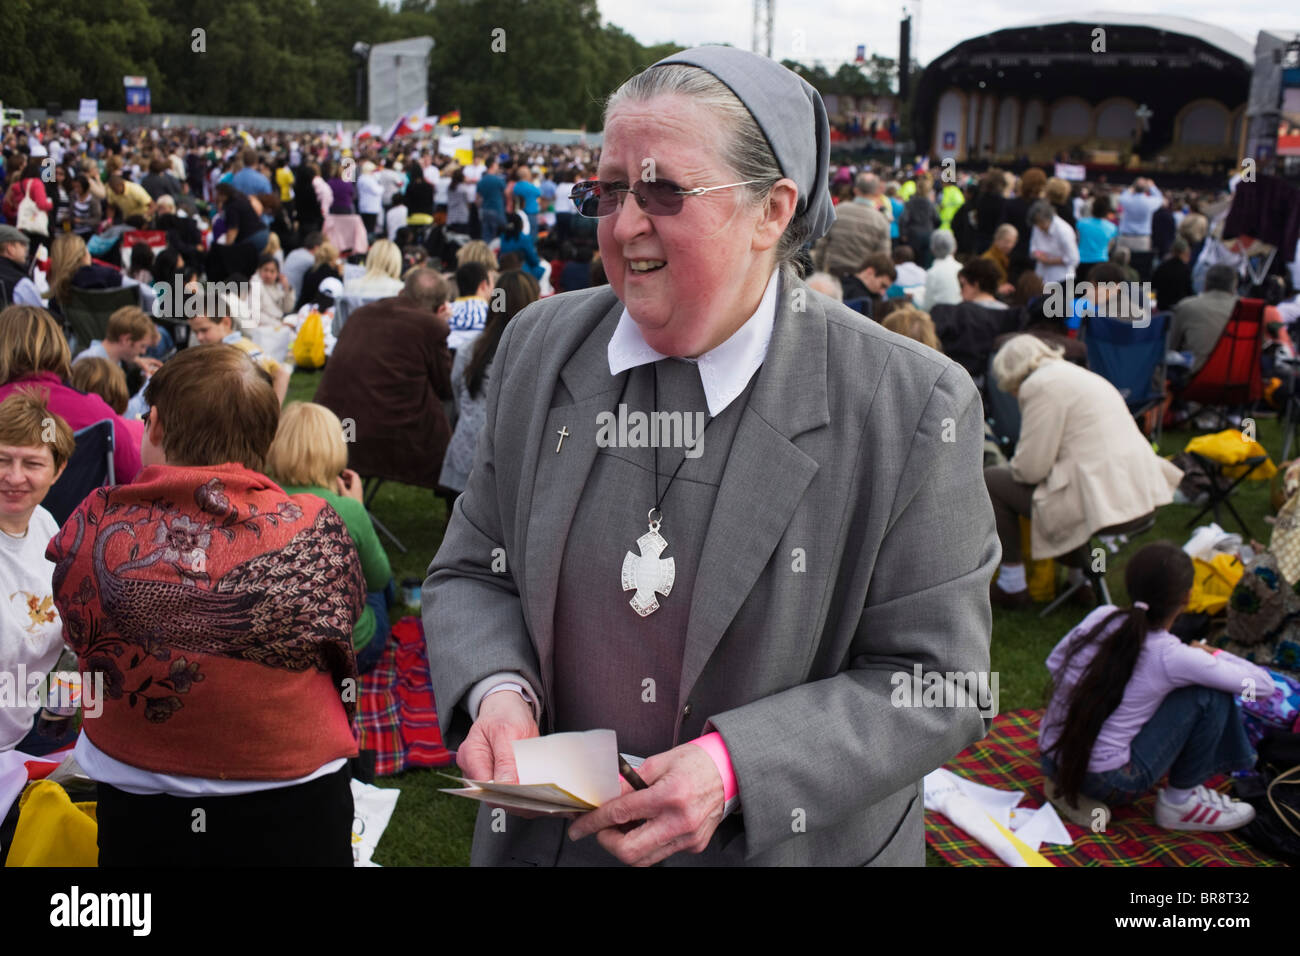 Sister Bernadette, Head Teacher of Viago Fedelis in Sth London awaits arrival of Pope Benedict at Hyde Park rally. - Stock Image